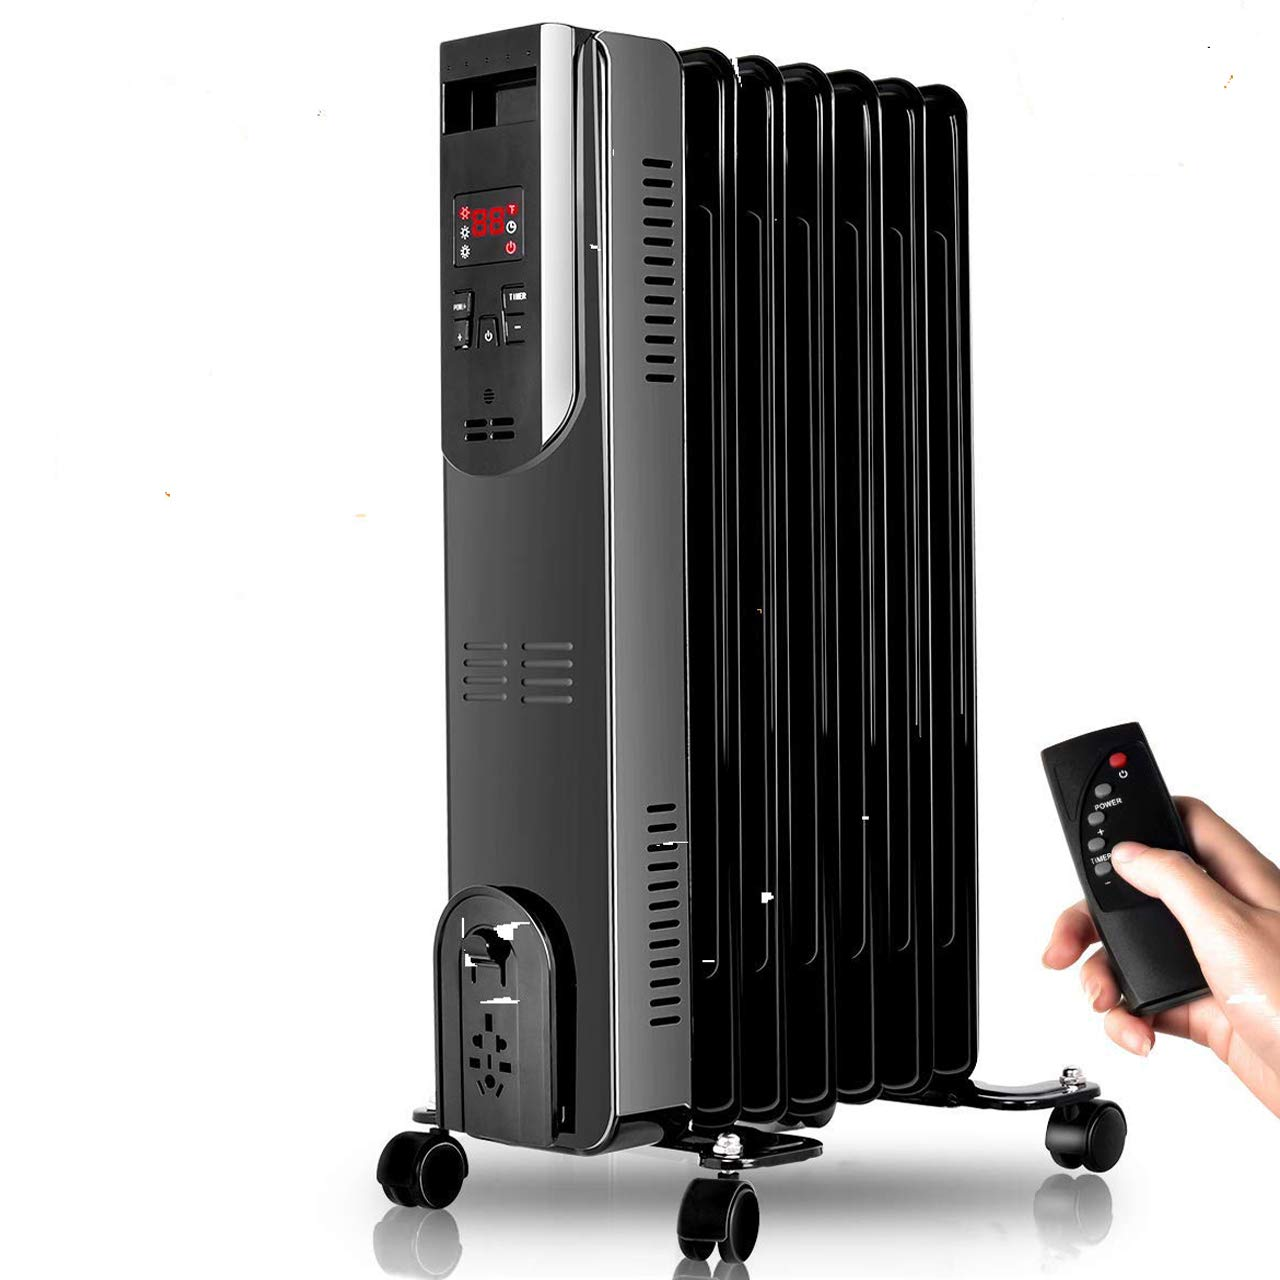 Radiator Heater – 1500W Oil Heater with Remote, 250 Sq Ft Coverage, Oil Filled Space Heater with Thermostat, LED Digital Display, Dual-Safety Protect, Electric Oil Filled Radiator Heater Room Office